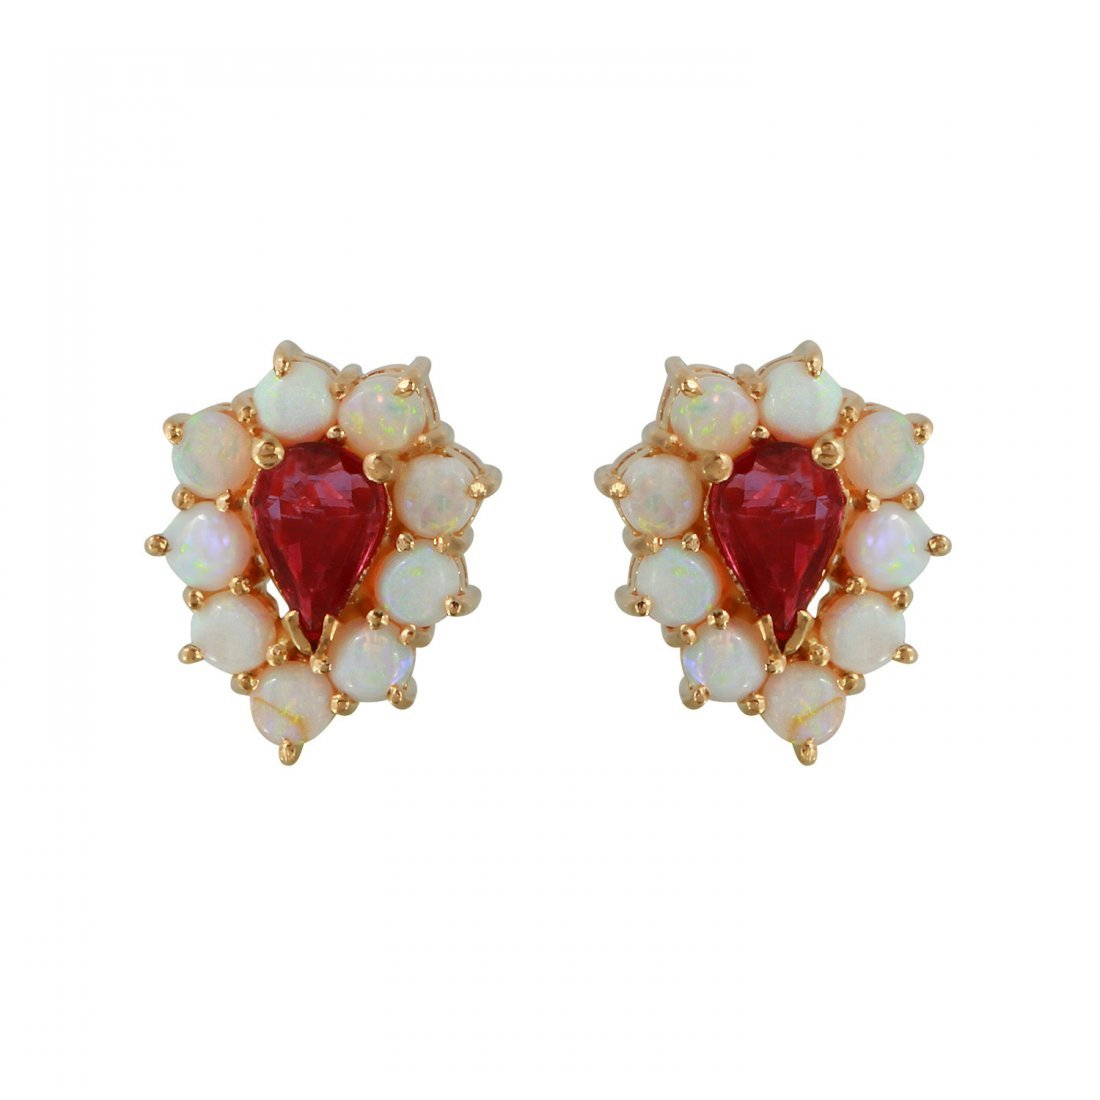 Ladies 1.32 CTW Ruby And Opal 14K Yellow Gold Earrings